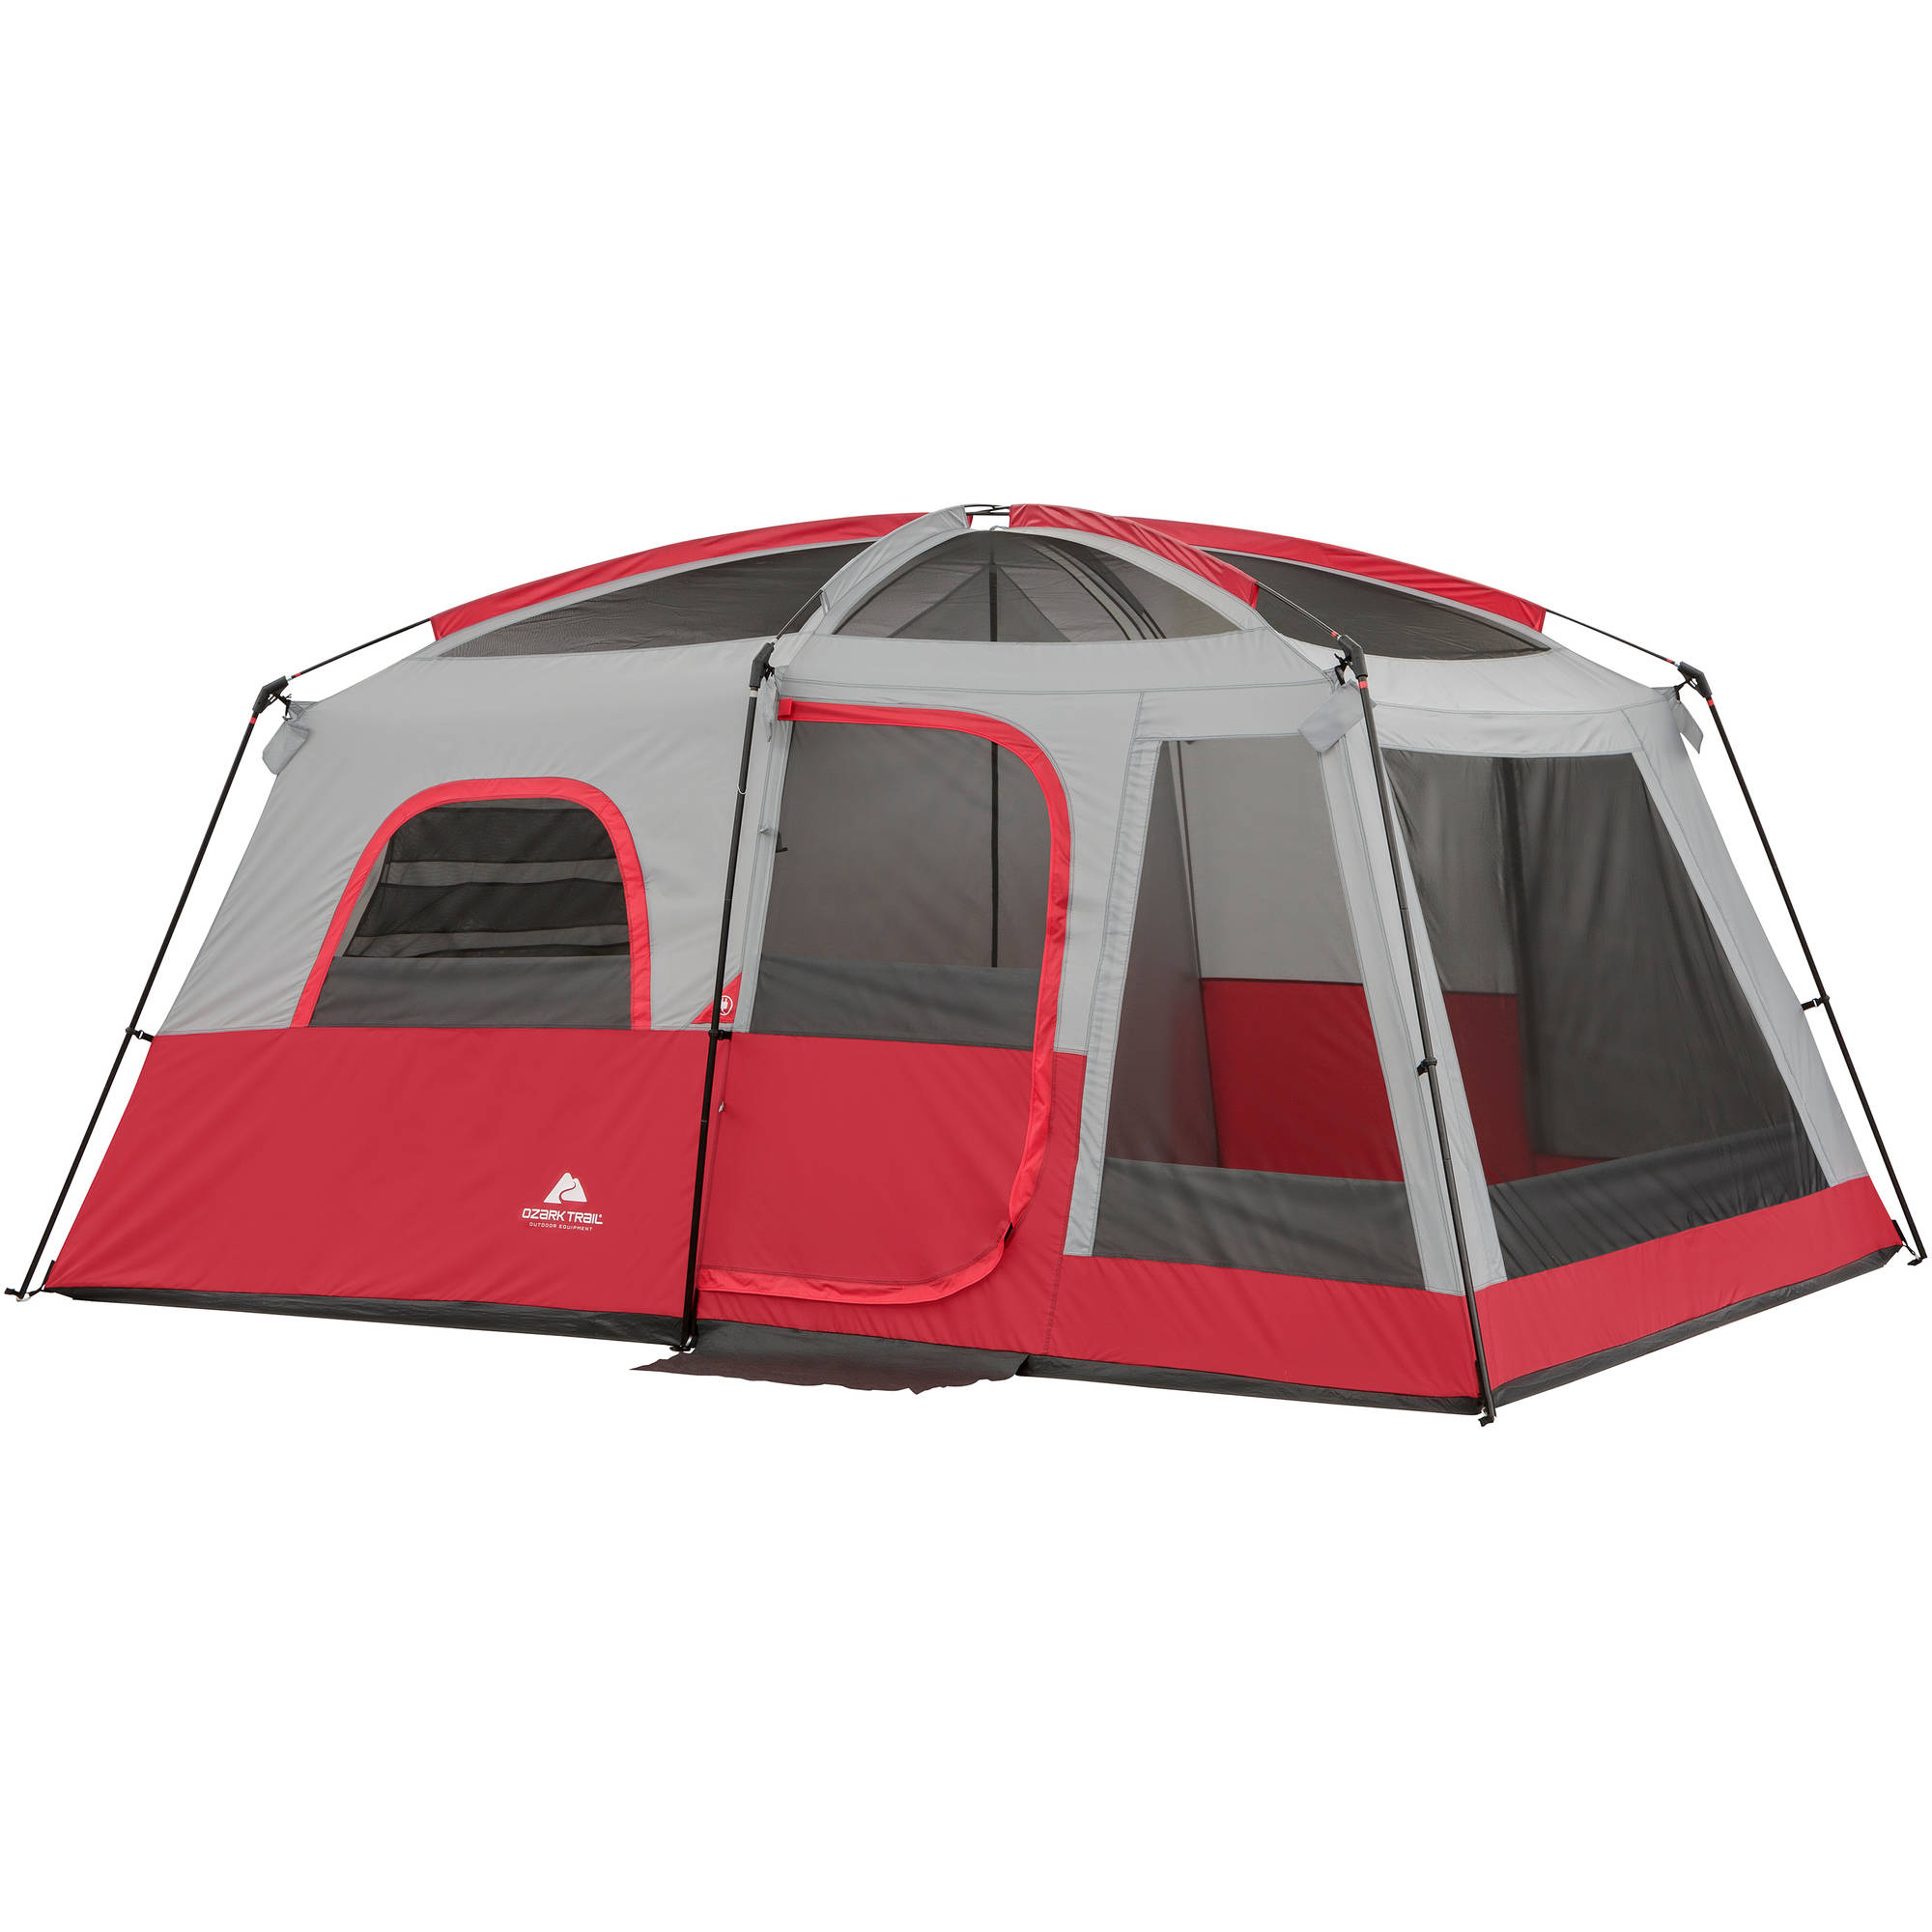 ozark trail 10 person 2 room cabin tent walmart com